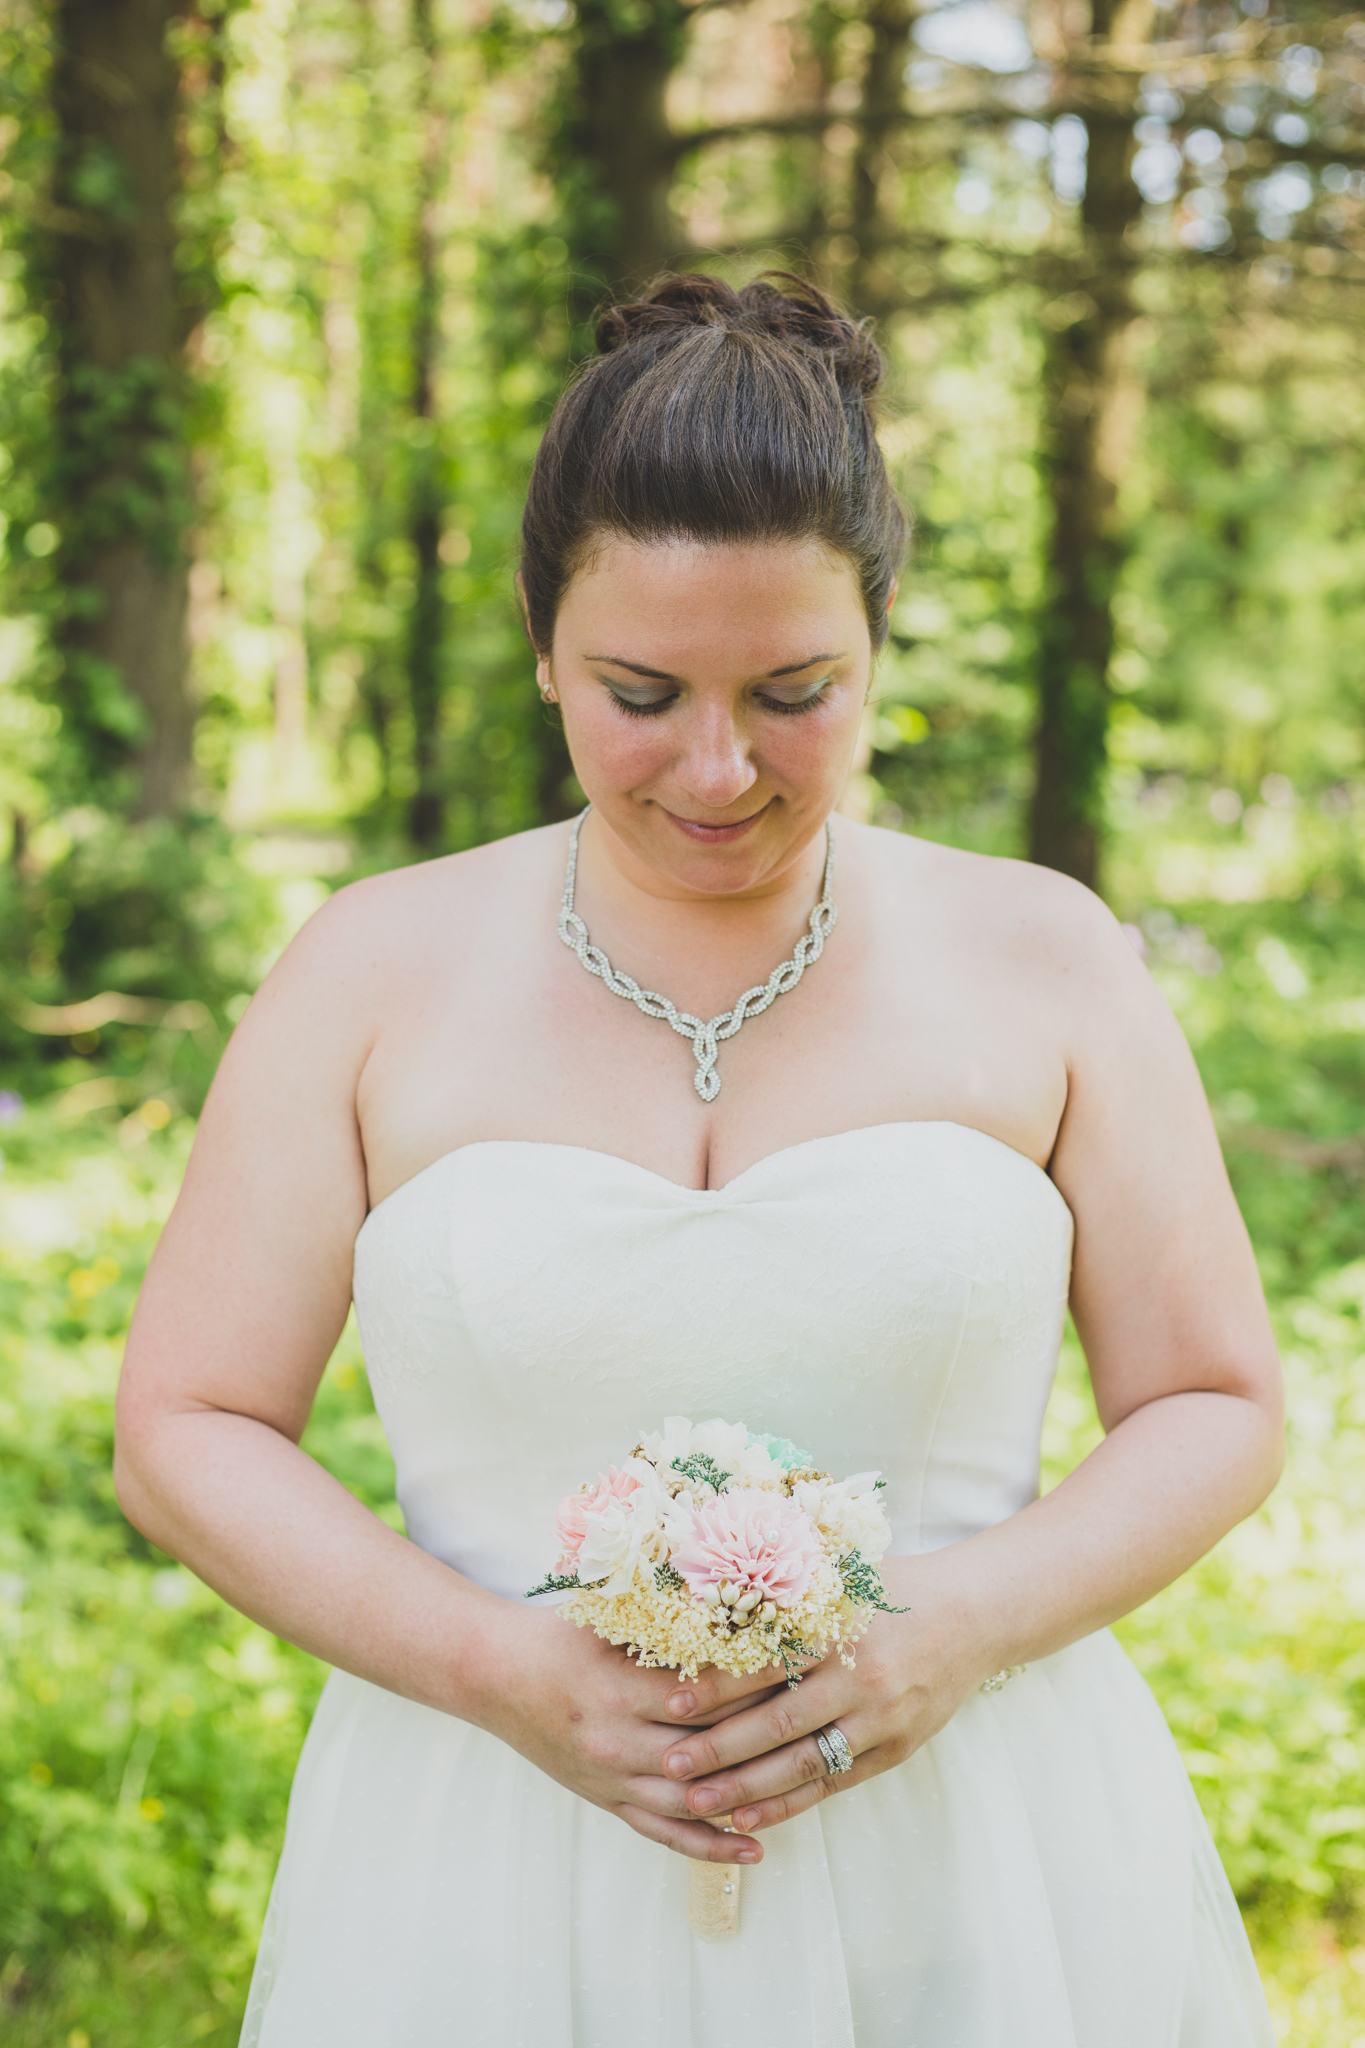 Michelle Carter Photography-Wedding Photography-27.jpg